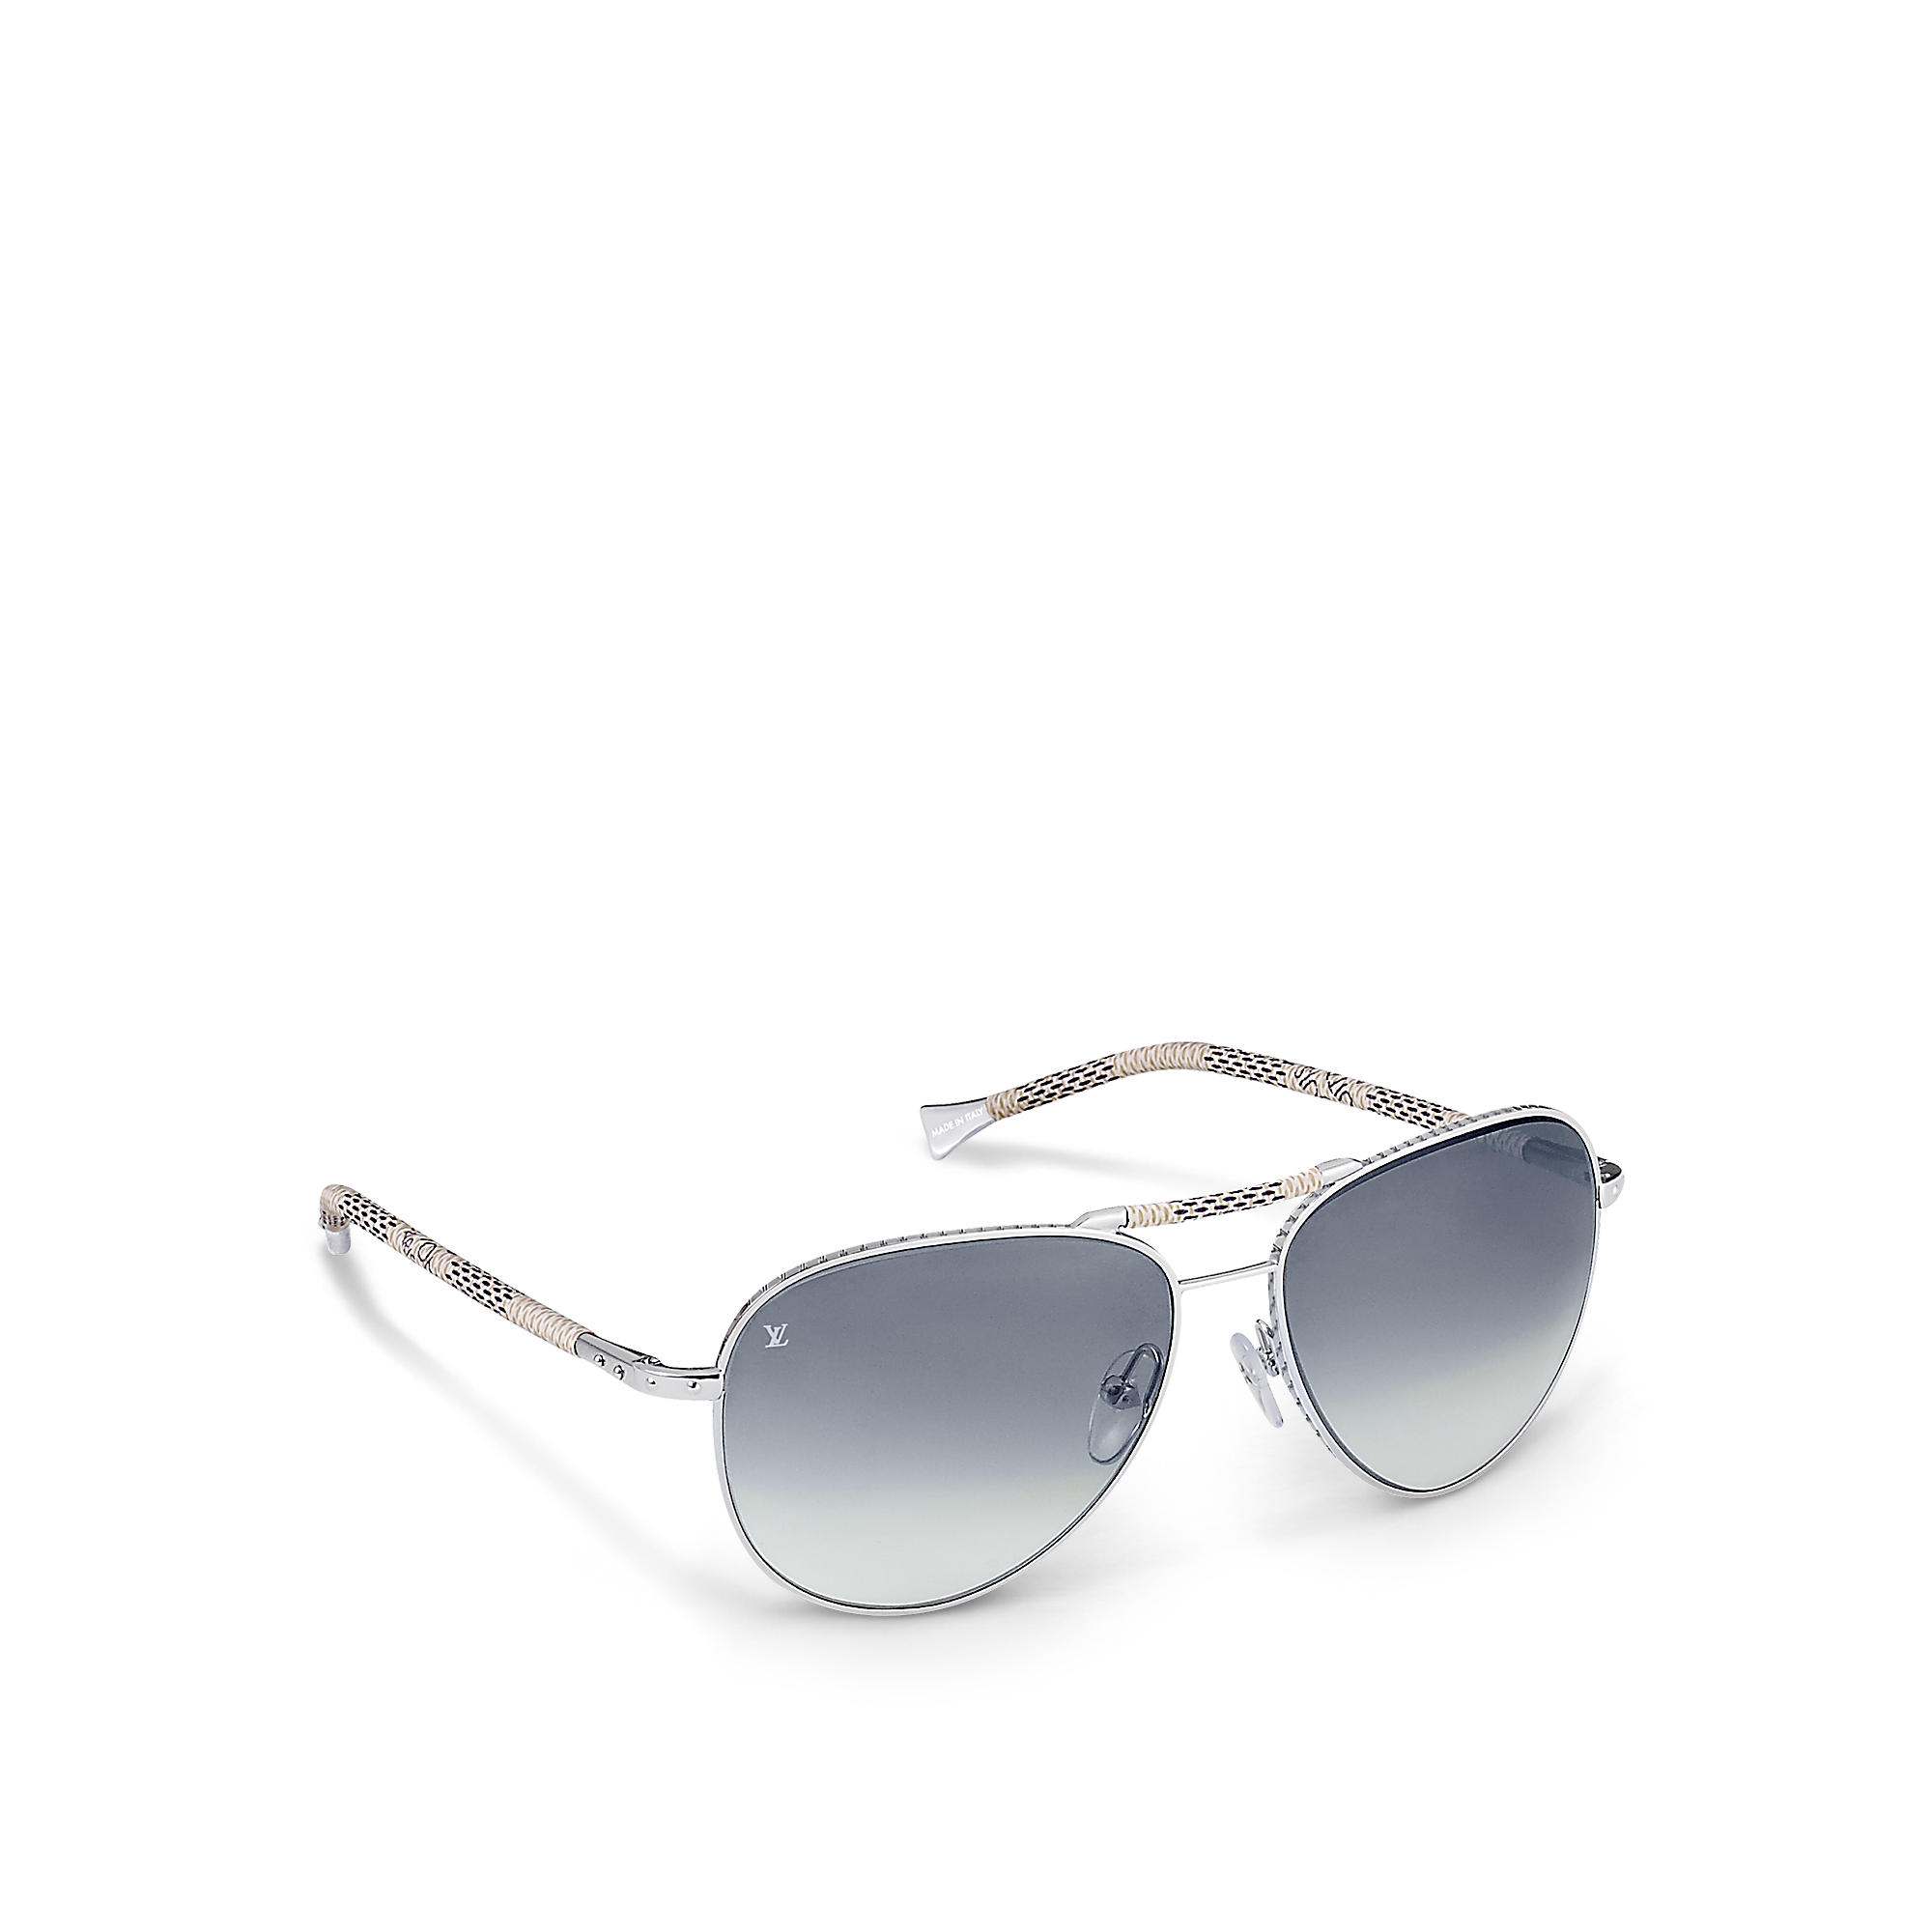 stylish sunglasses  aviator sunglasses